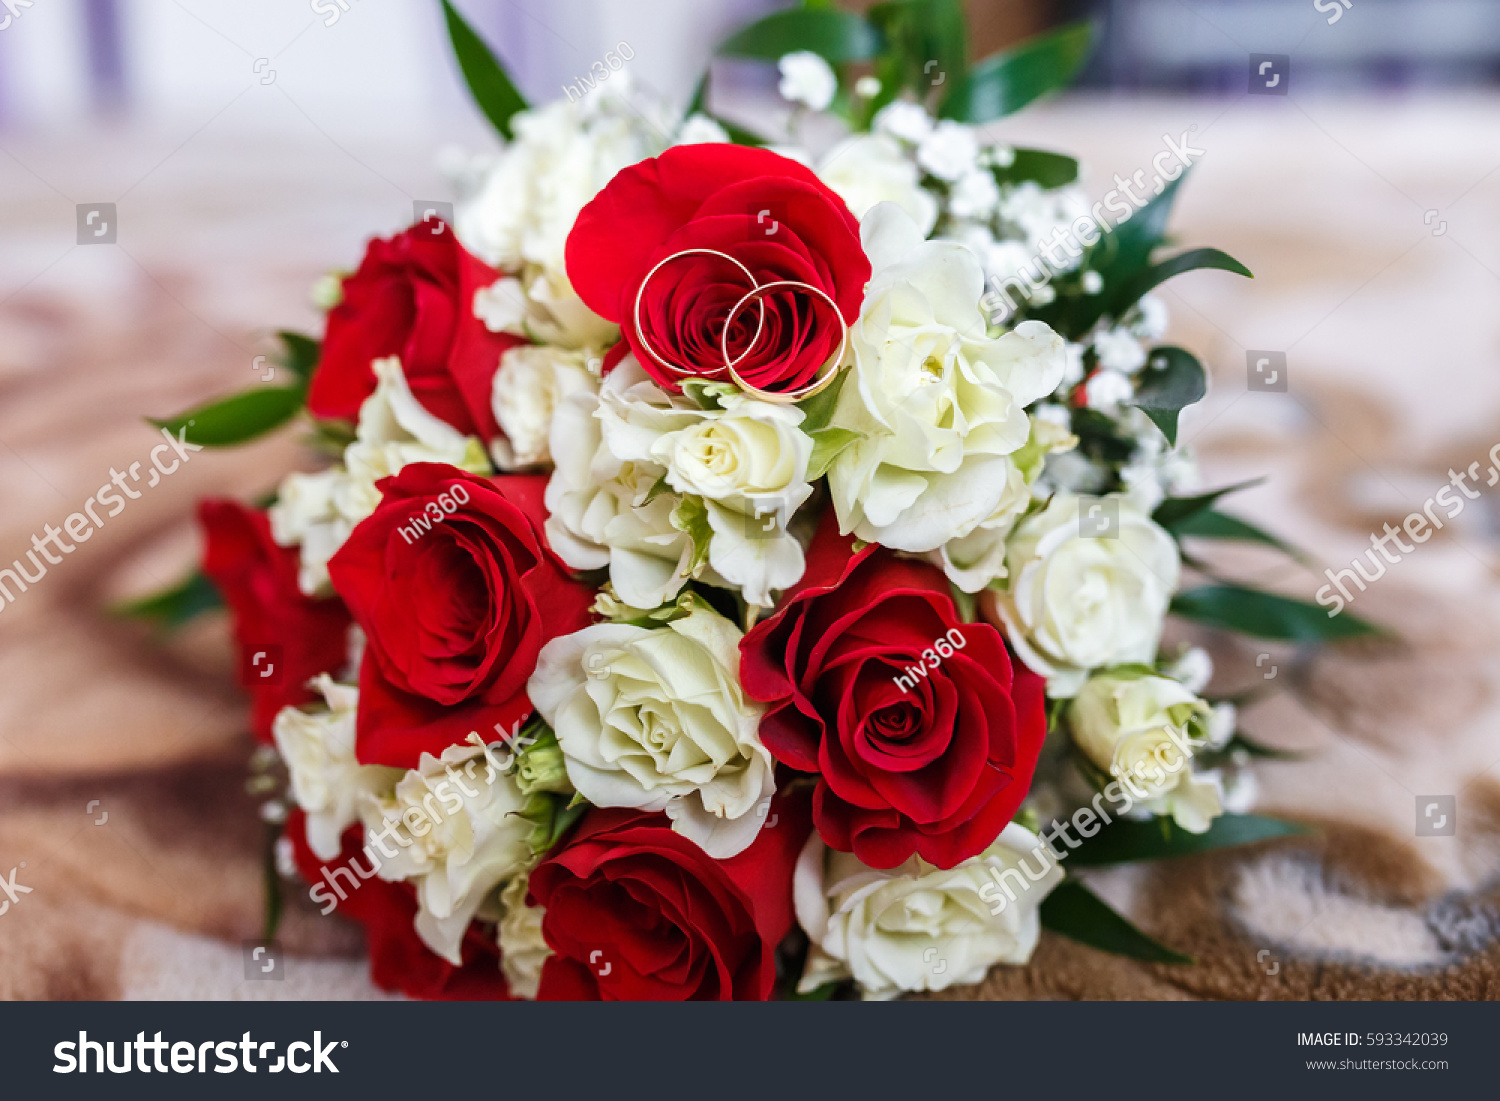 flower russia petersburg st photo car the afkwht gold with stock wedding and bouquet bonnet on displayed white rings